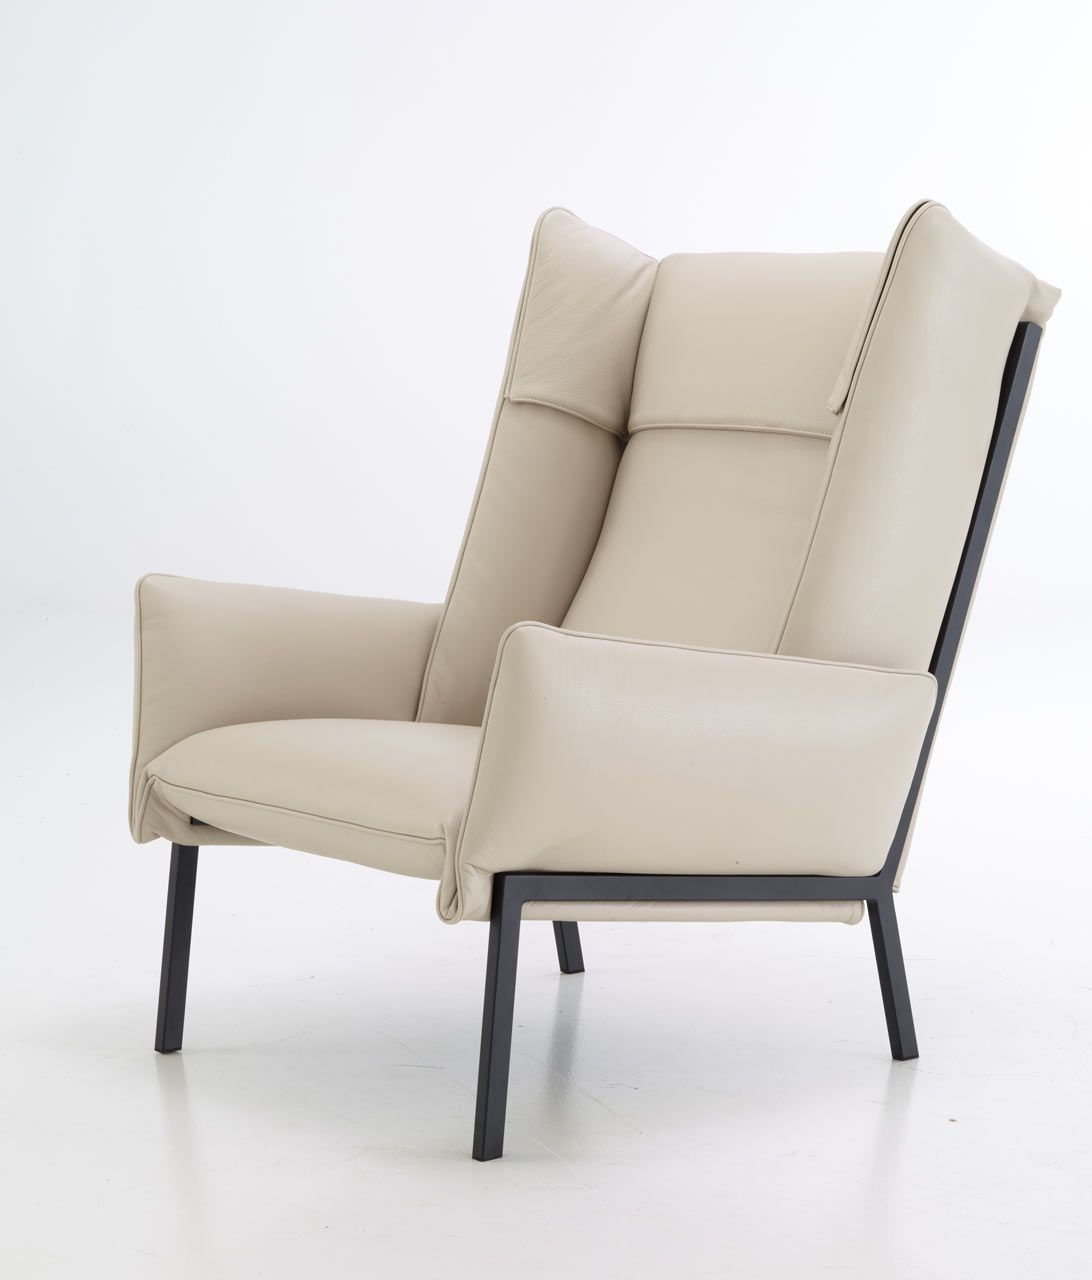 Ligne Roset Sessel Toa Beau Fixe Chair Ligne Roset Inga Sempe 2 In 2019 Chairs Lounge